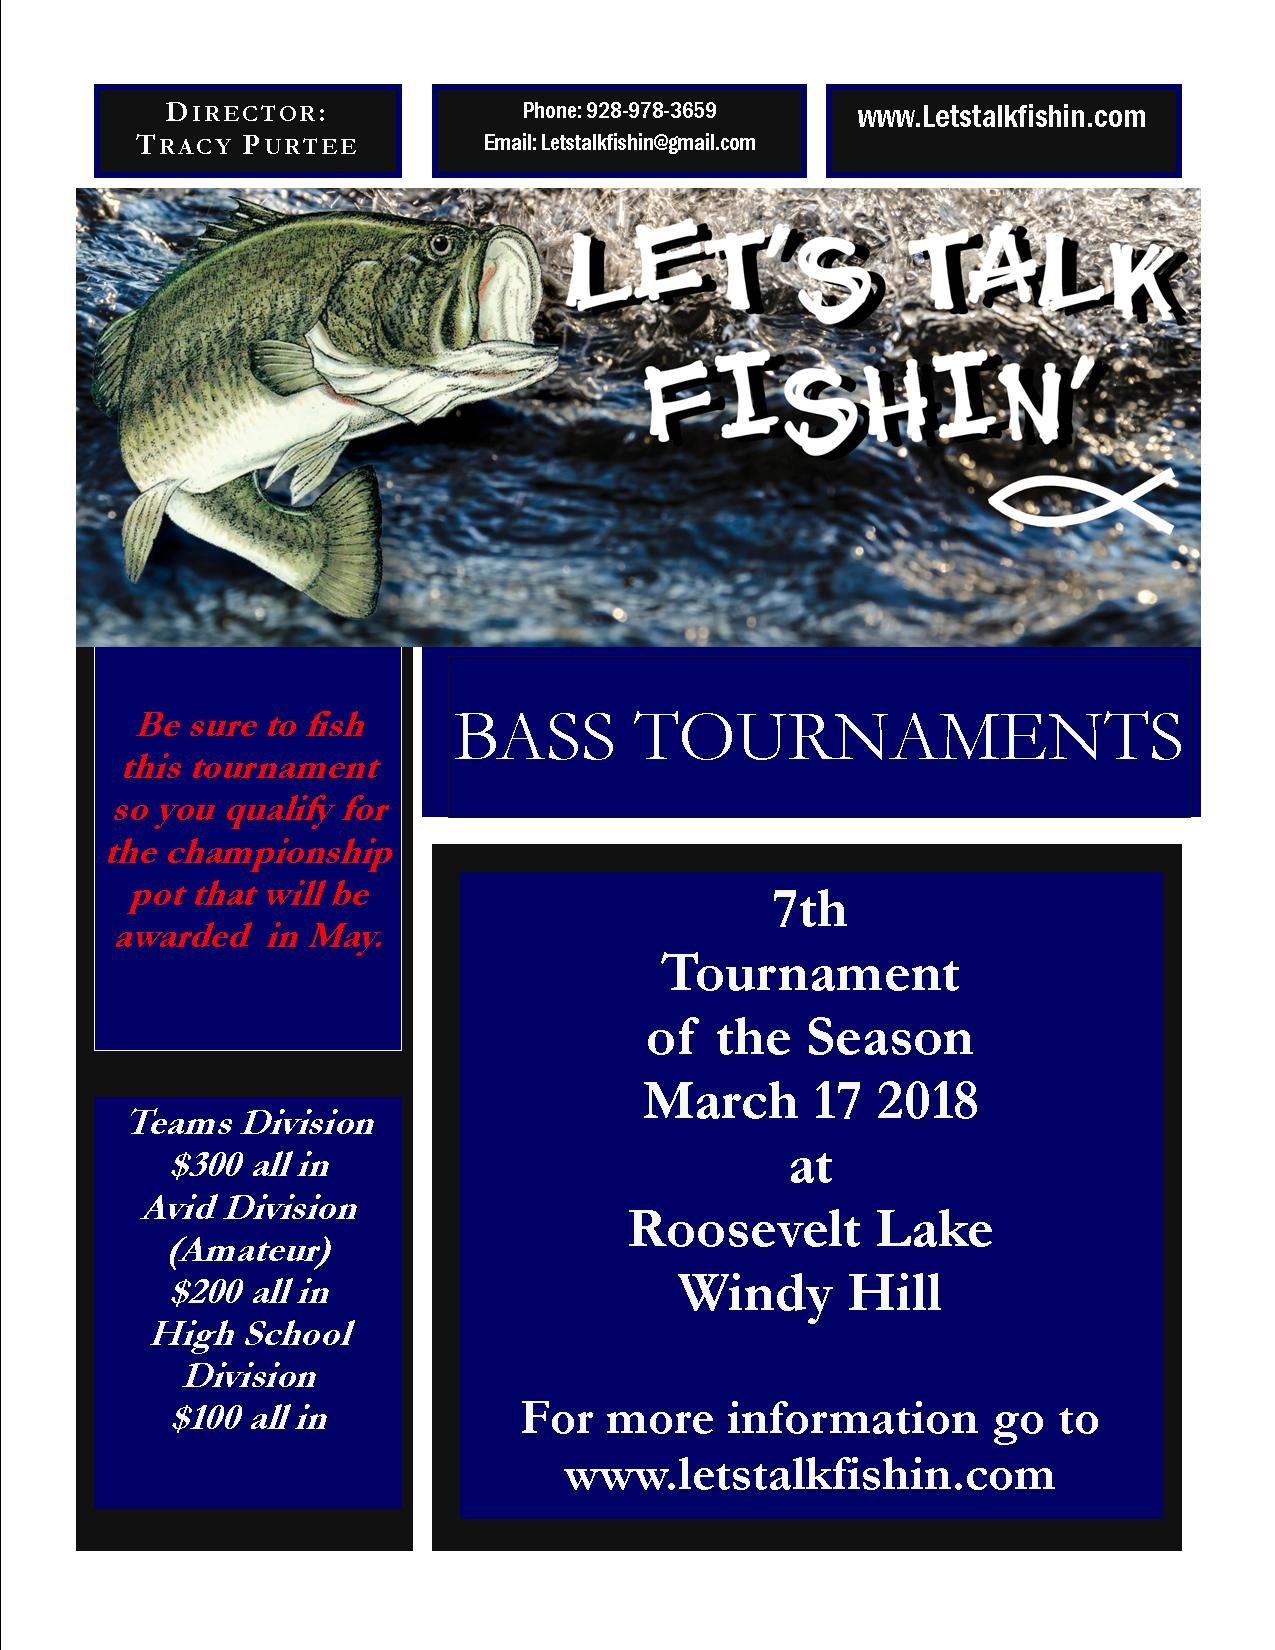 Click image for larger version  Name:7th Tournament.jpg Views:1540 Size:283.6 KB ID:96826